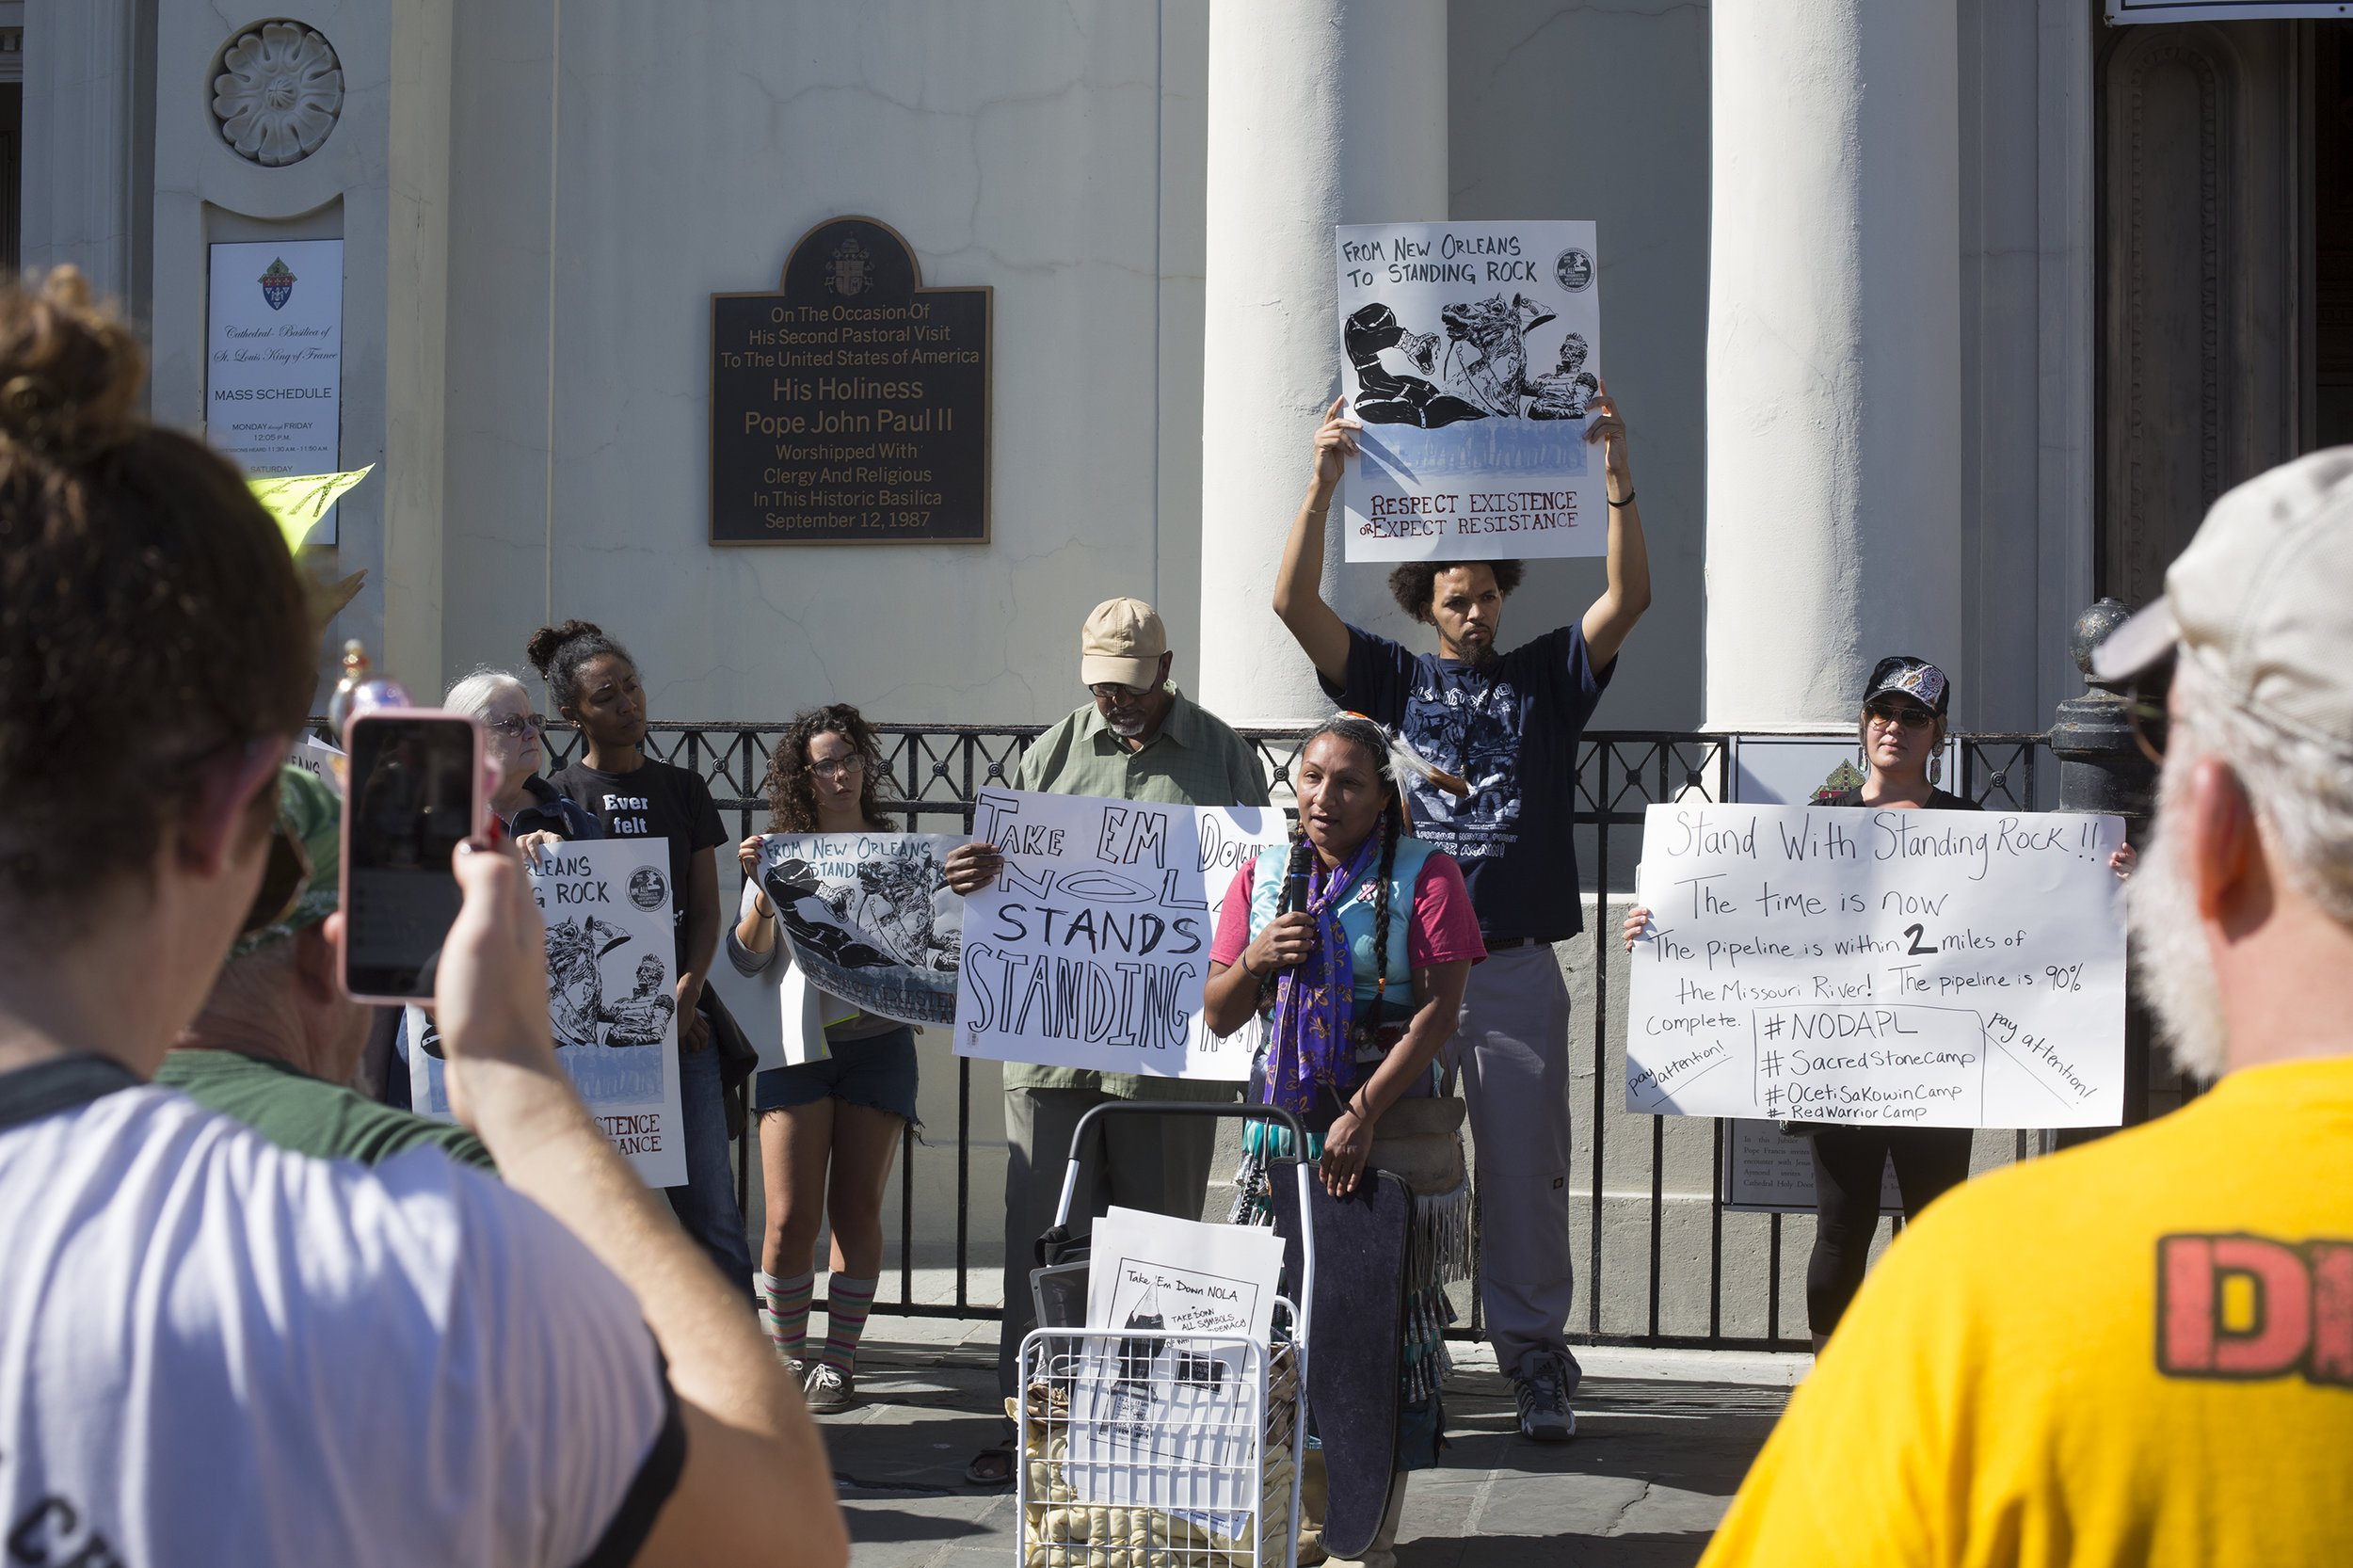 Protesters gathered at St. Louis Cathedral in solidarity with Standing Rock Indian Reservation, who are trying to fight off a pipeline being drilled on their scared grounds.